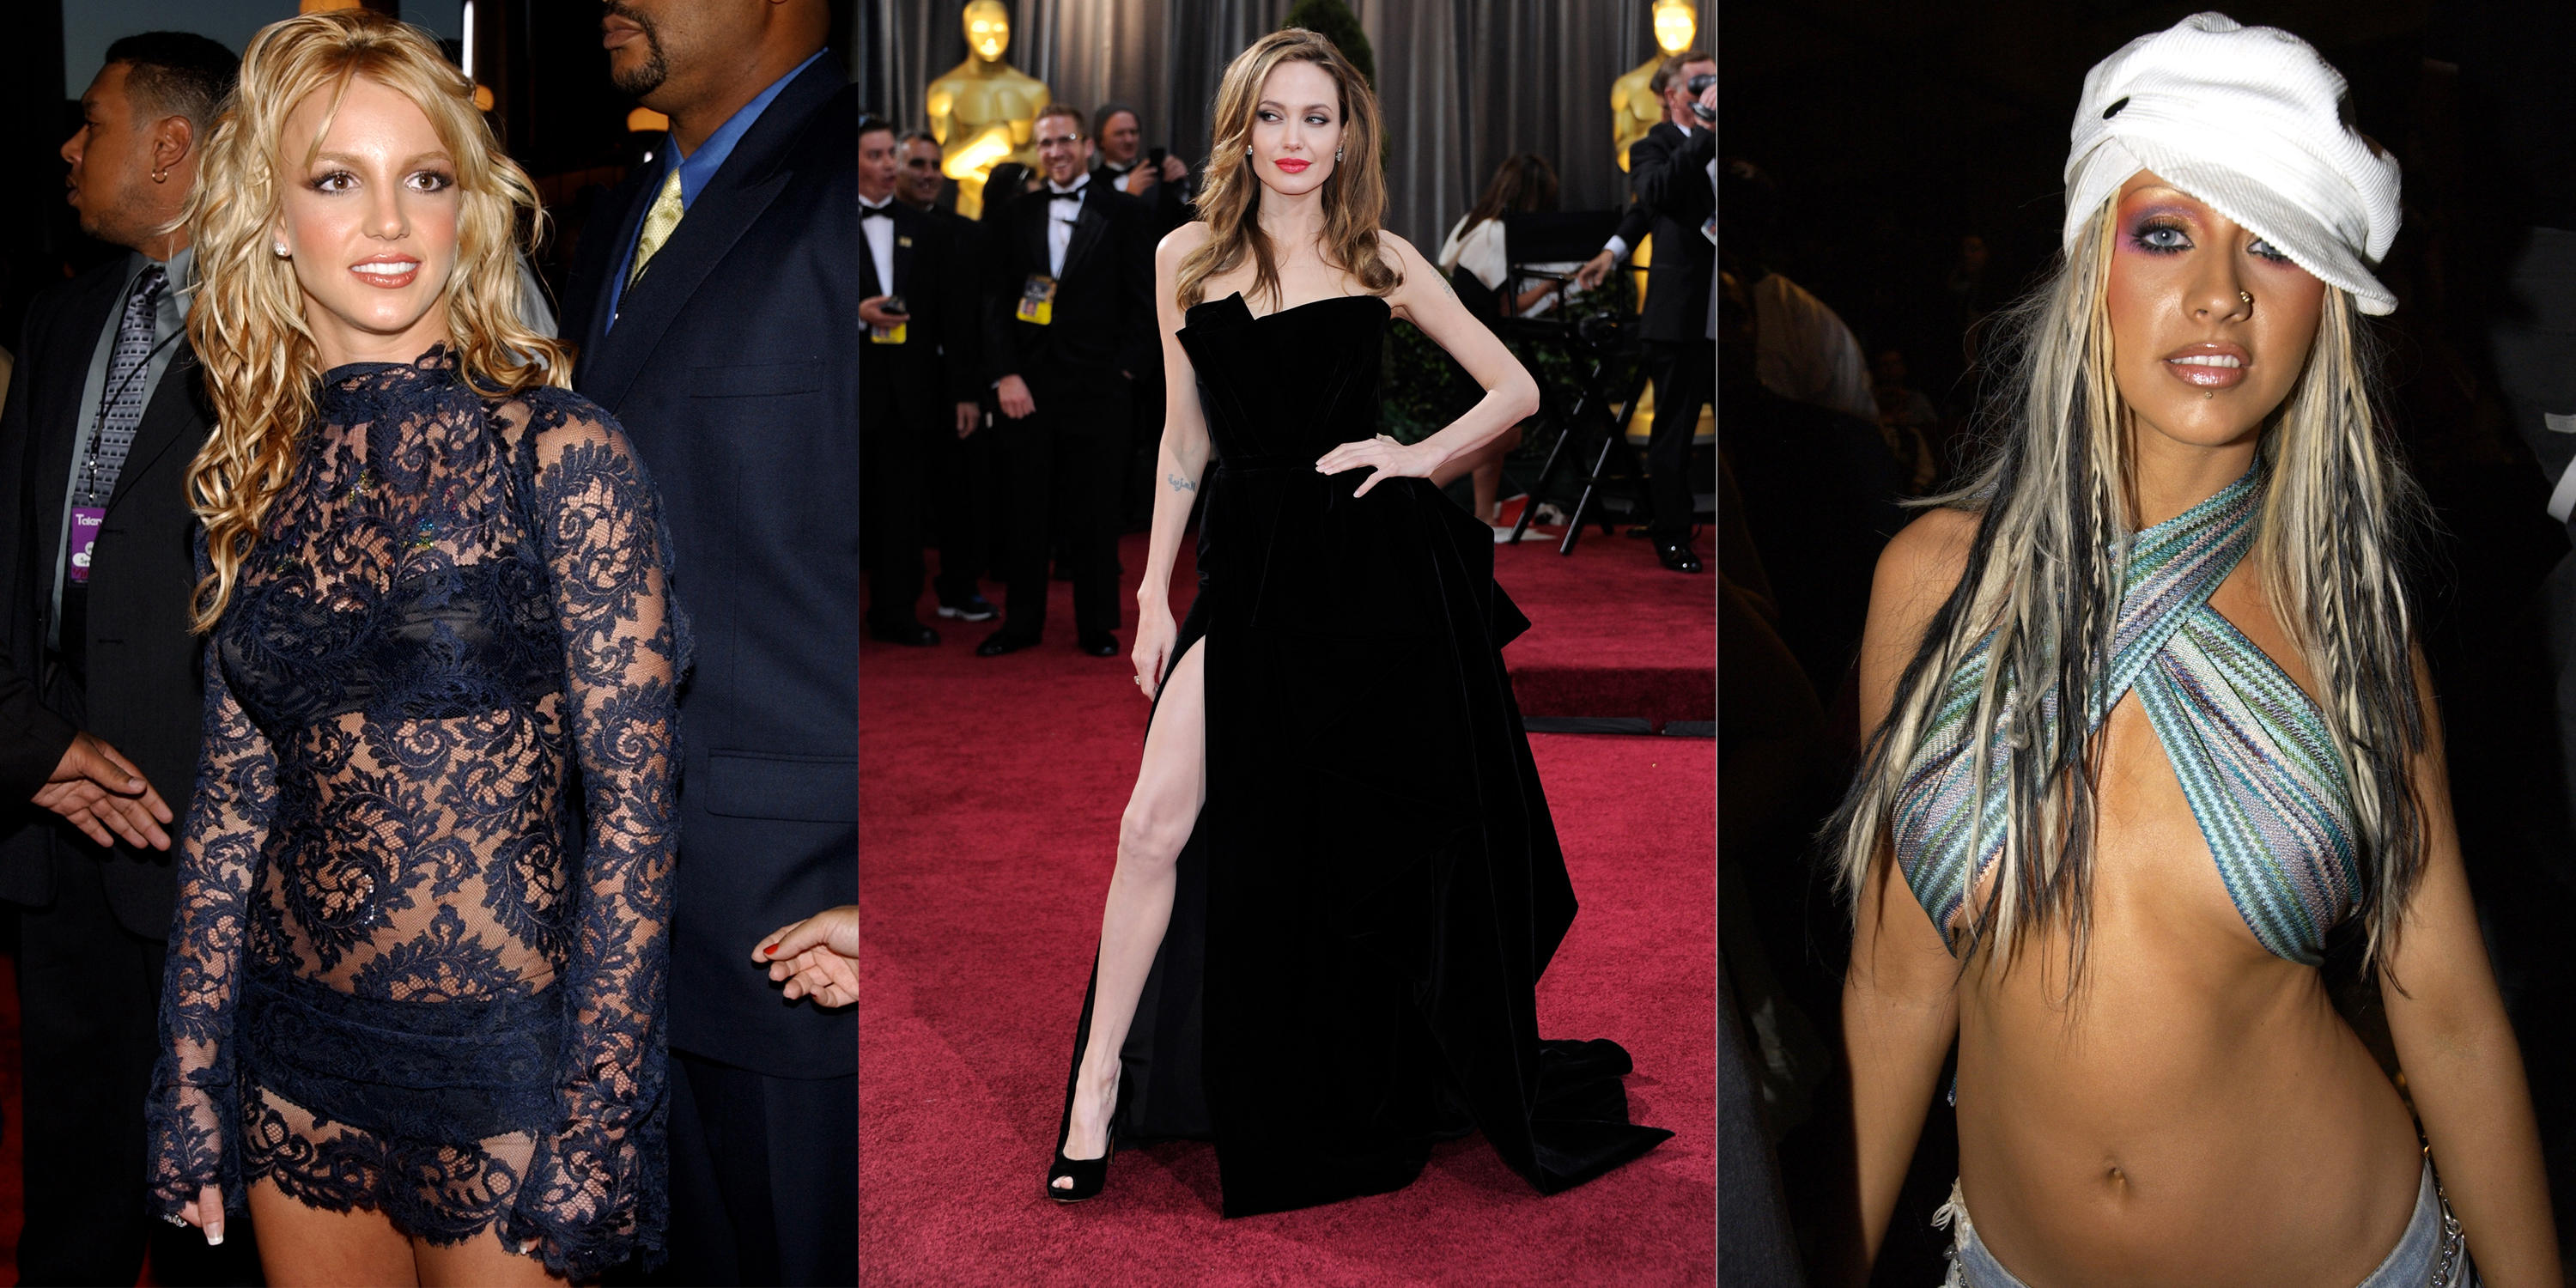 The Most Scandalous Red Carpet Gowns Of All Time